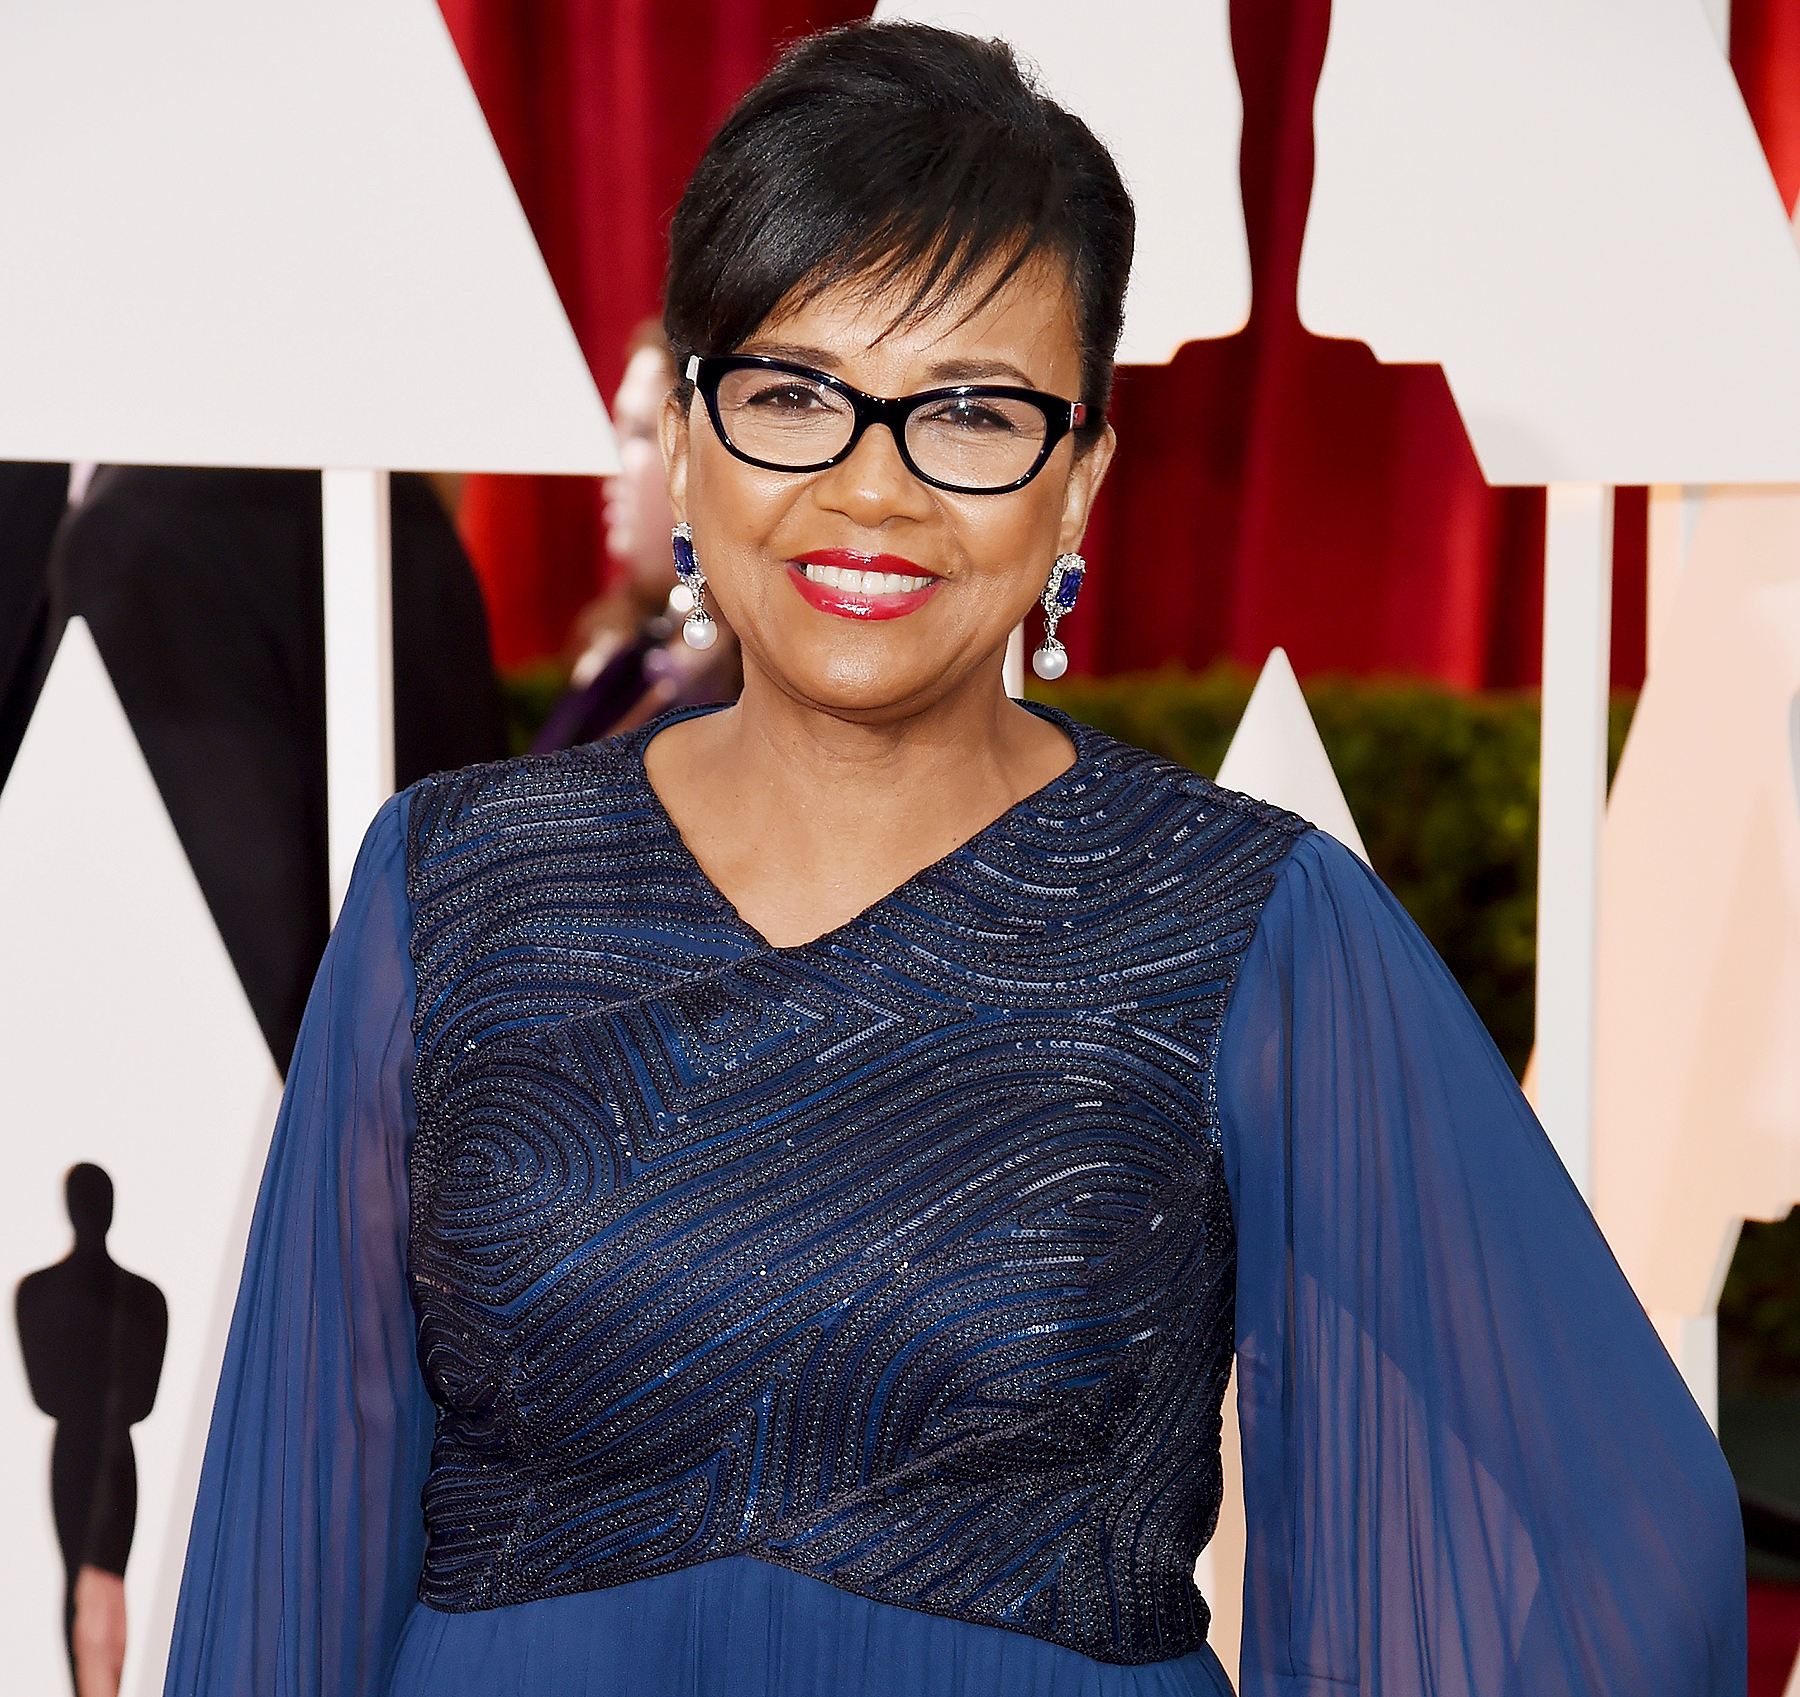 President of AMPAS Cheryl Boone Isaacs attends the 87th Annual Academy Awards.